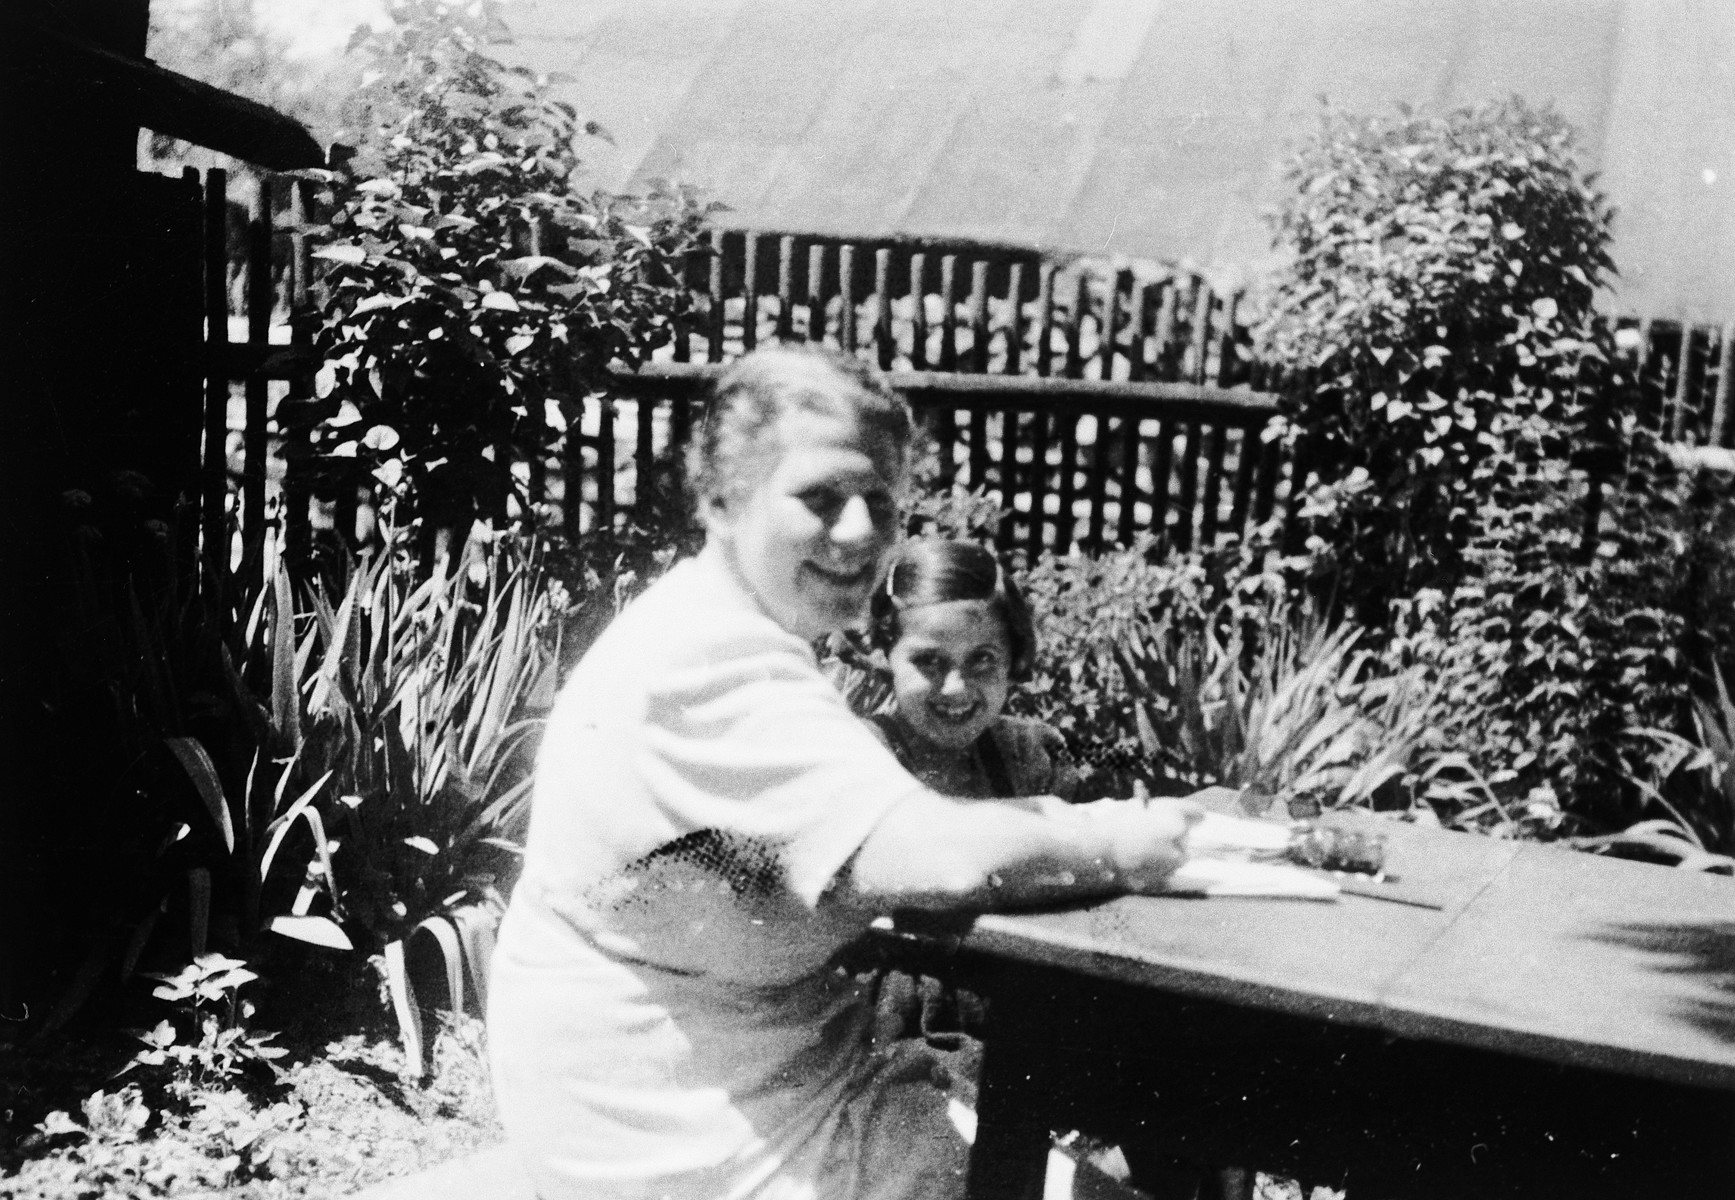 Kitty Weichherz sits with an older woman [possibly her grandmother] by a table in a garden.  This photo was taken from the diary of Kitty's life written by her father, Bela Weichherz.